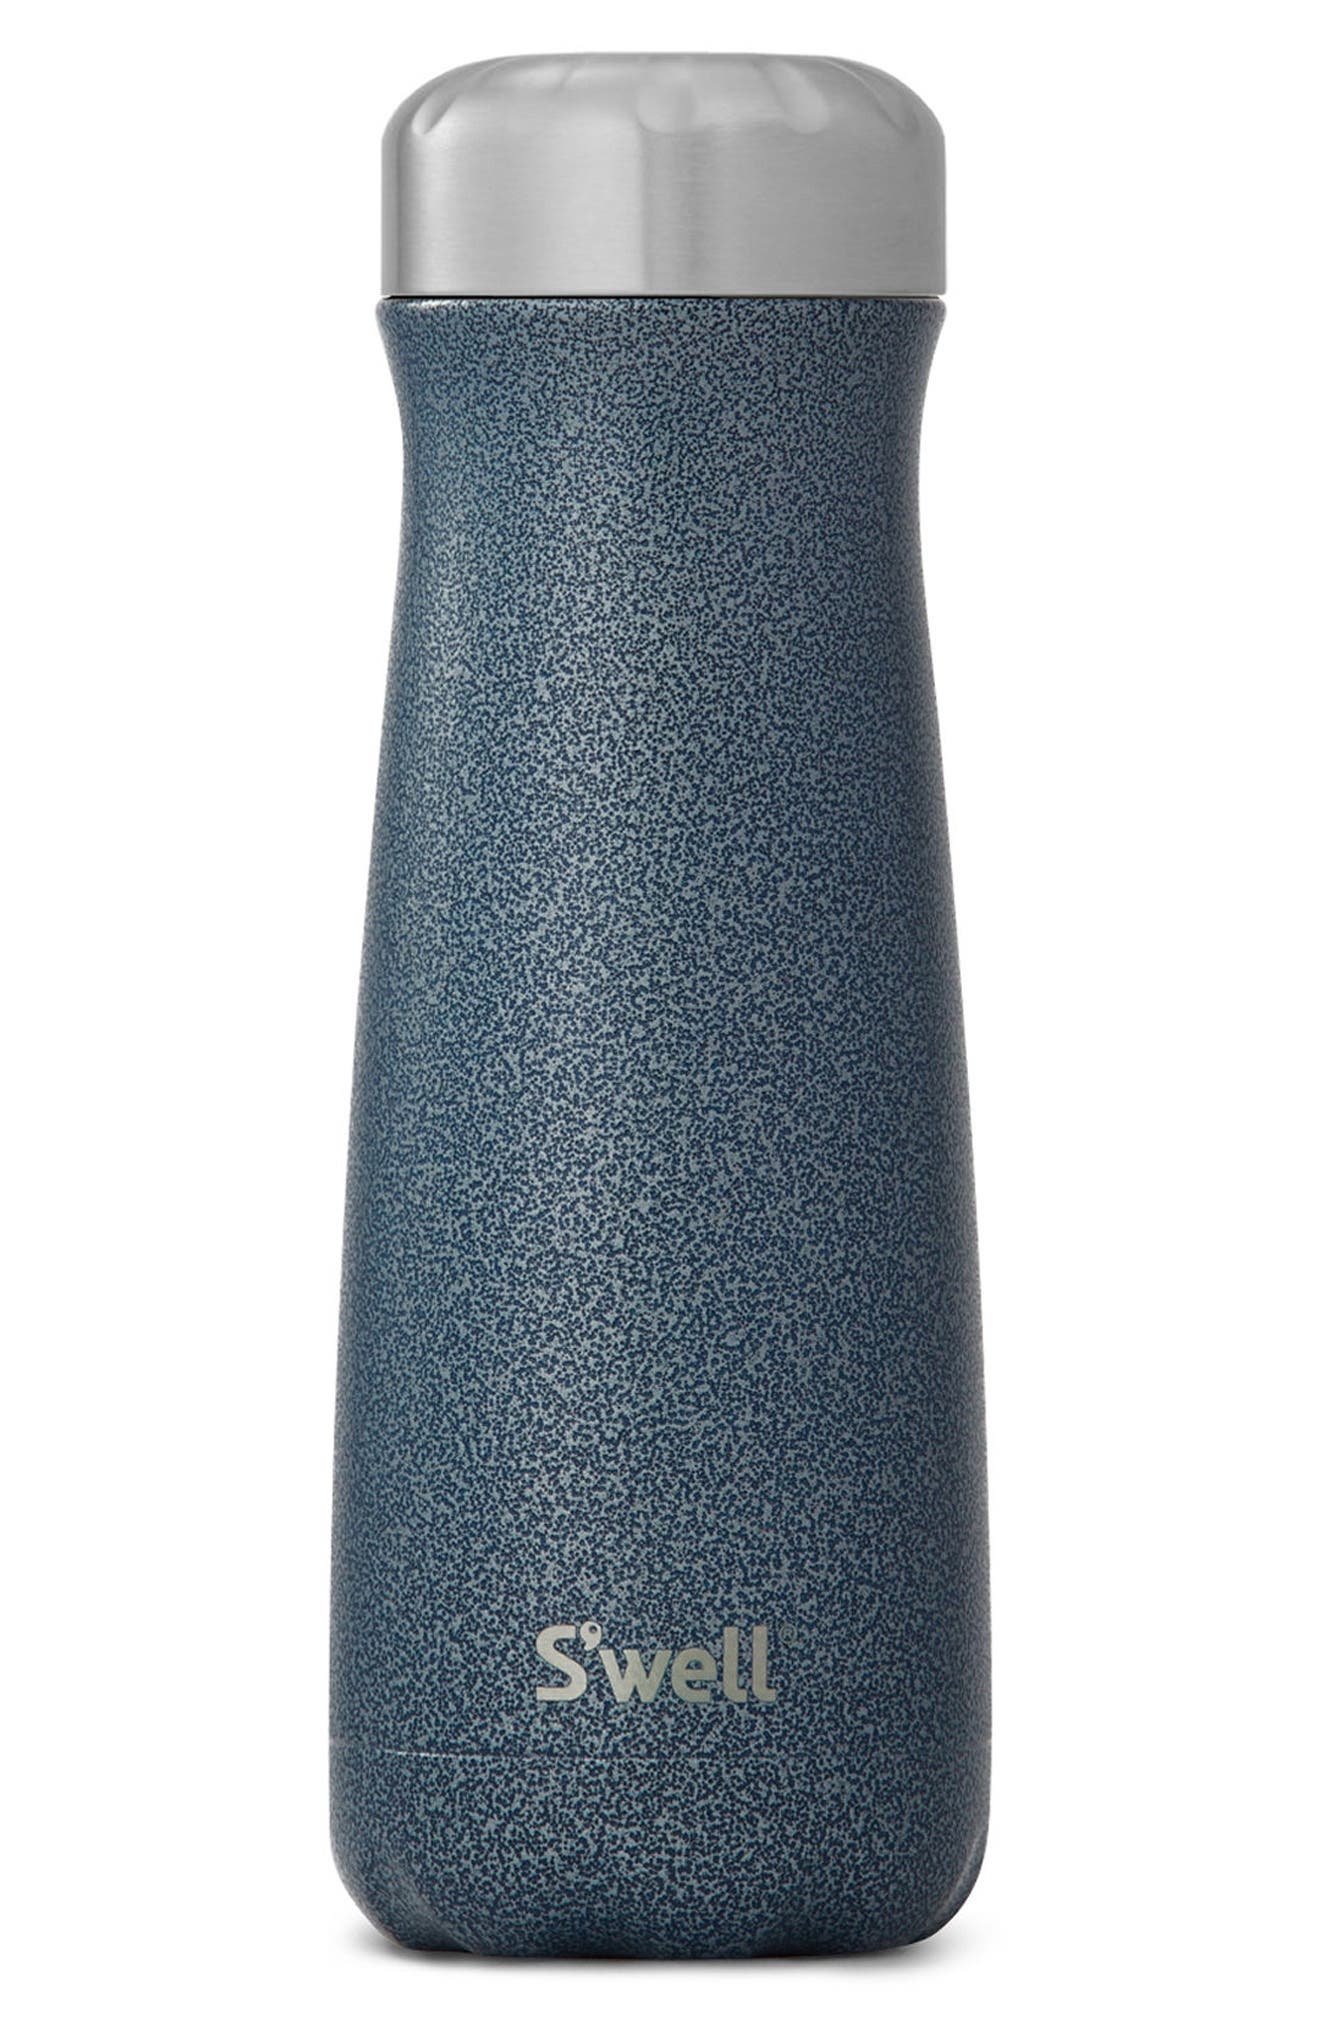 Traveler Night Sky Insulated Stainless Steel Water Bottle,                         Main,                         color, NIGHT SKY